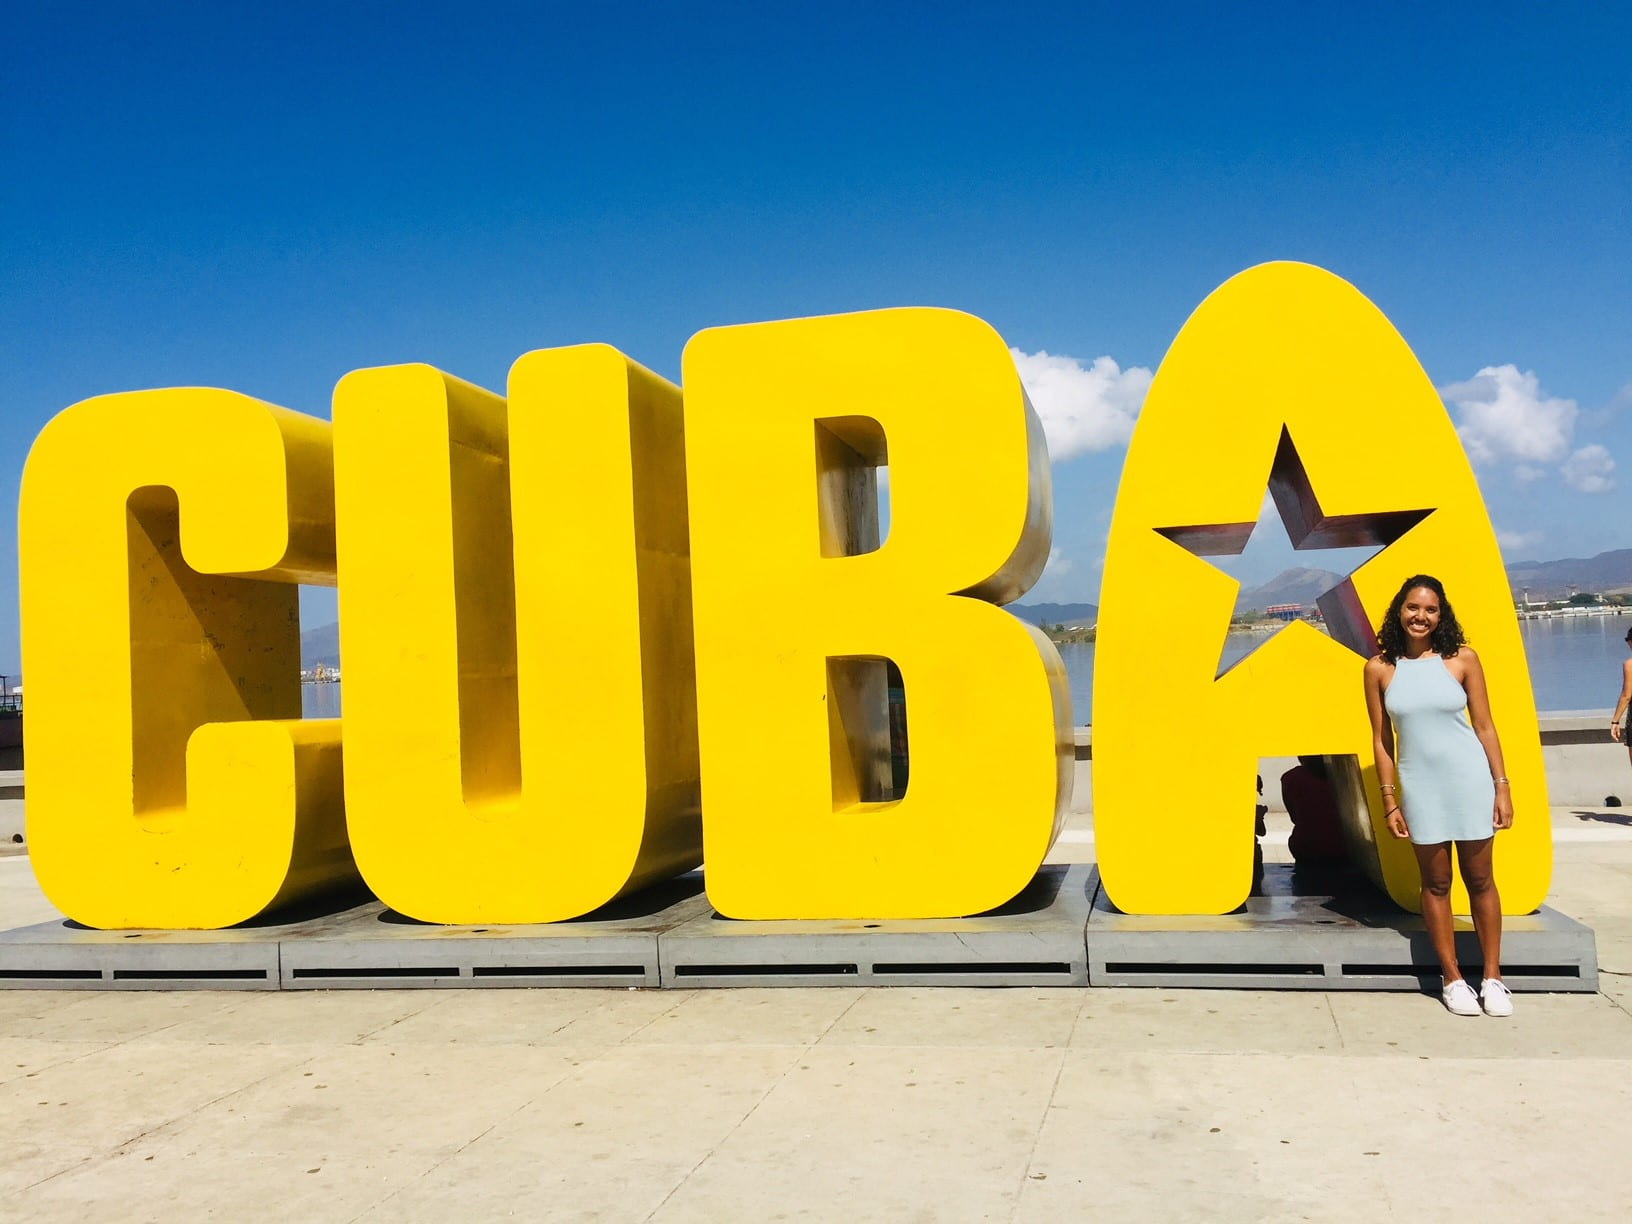 Bella standing in front of large yellow Cuba sign